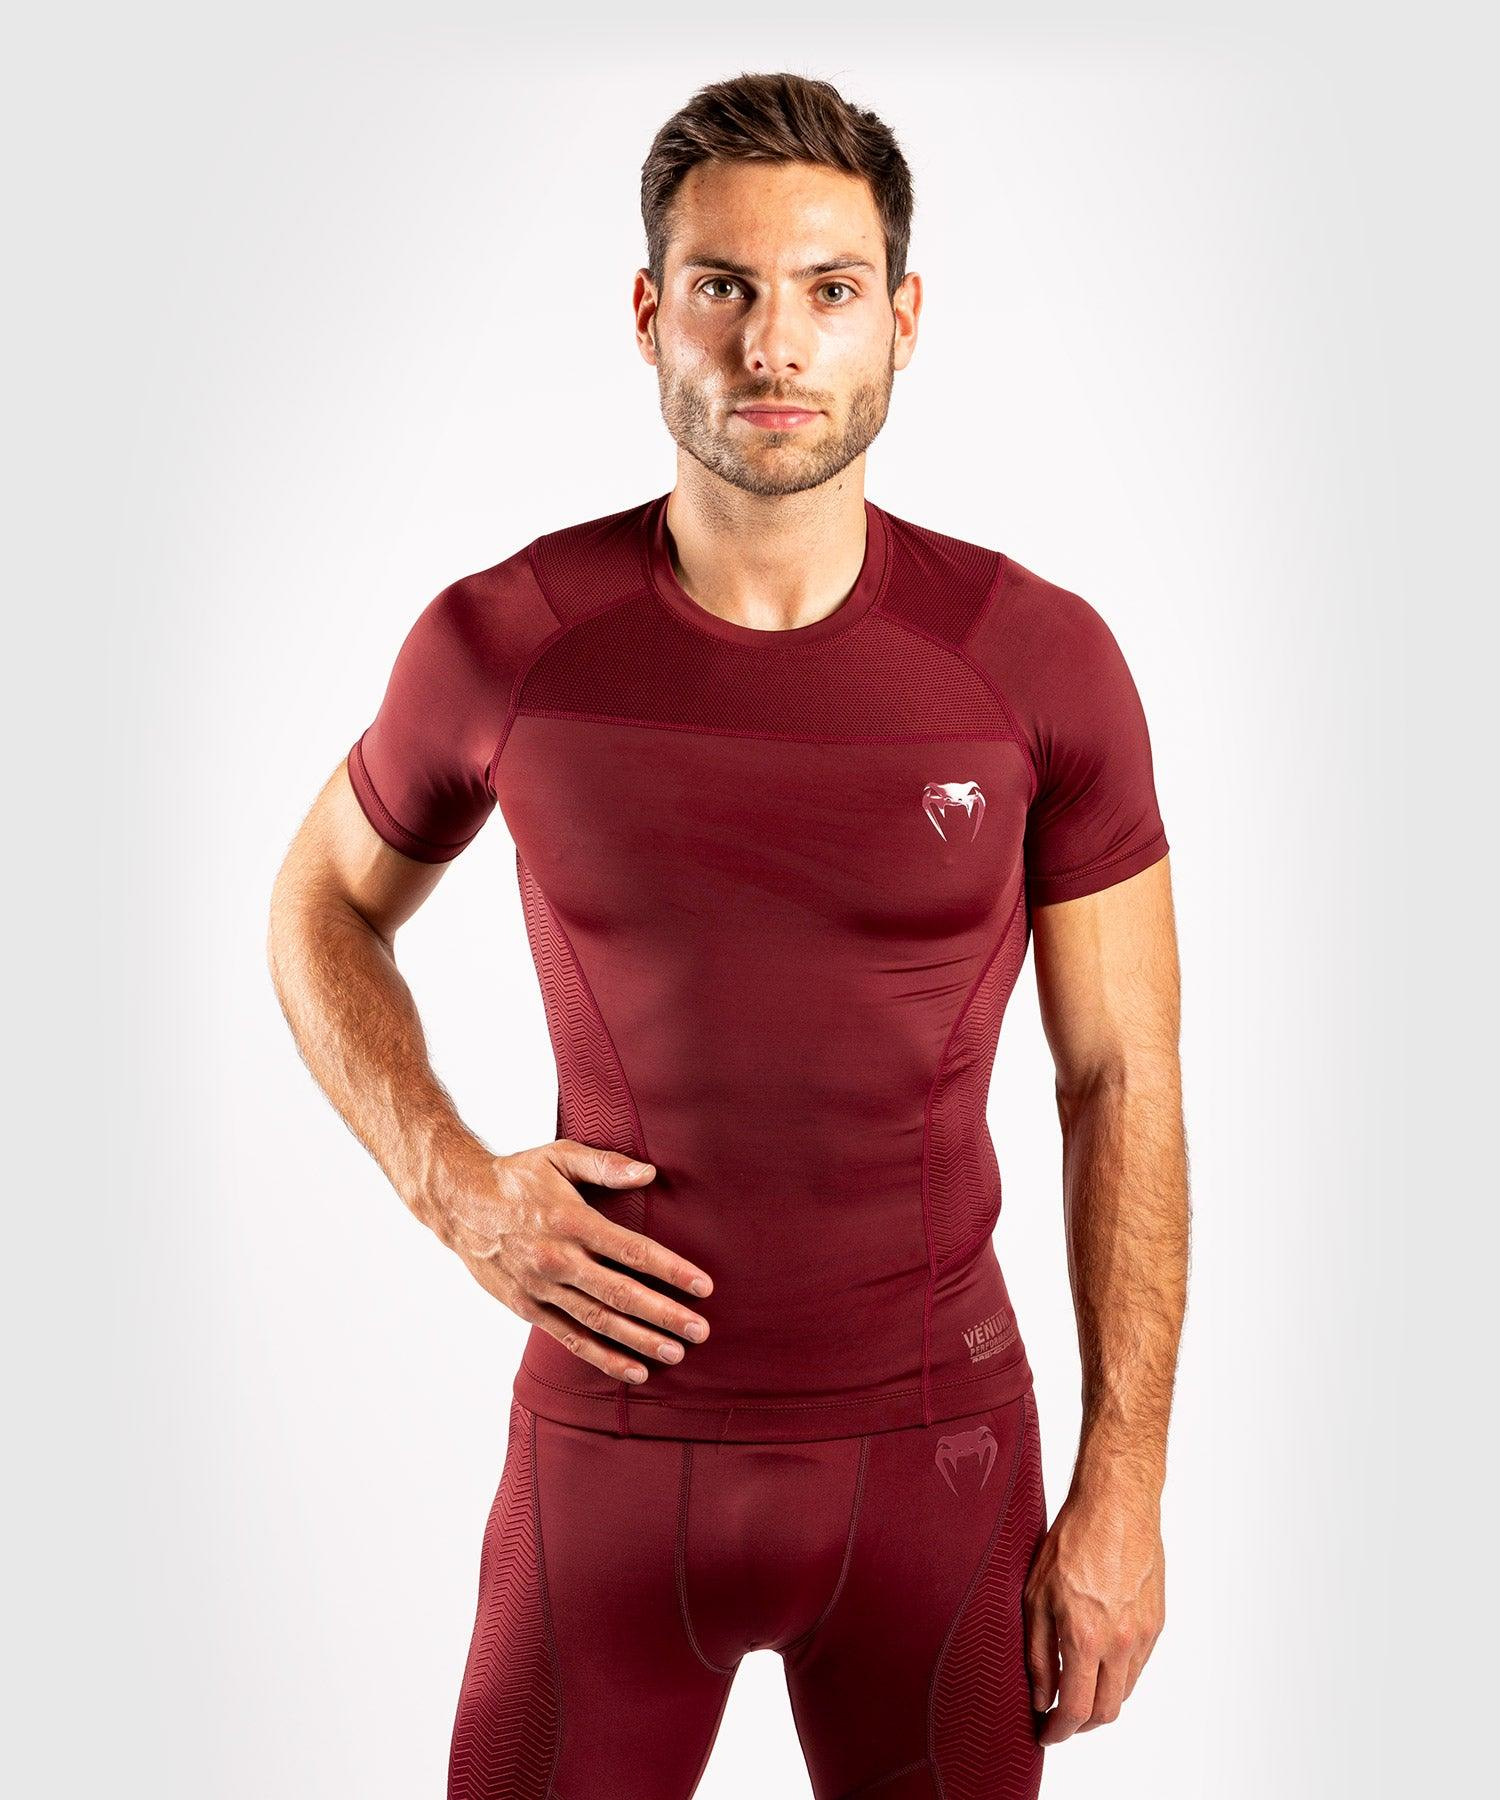 Venum G-Fit Rashguard - Short Sleeves - Burgundy picture 1